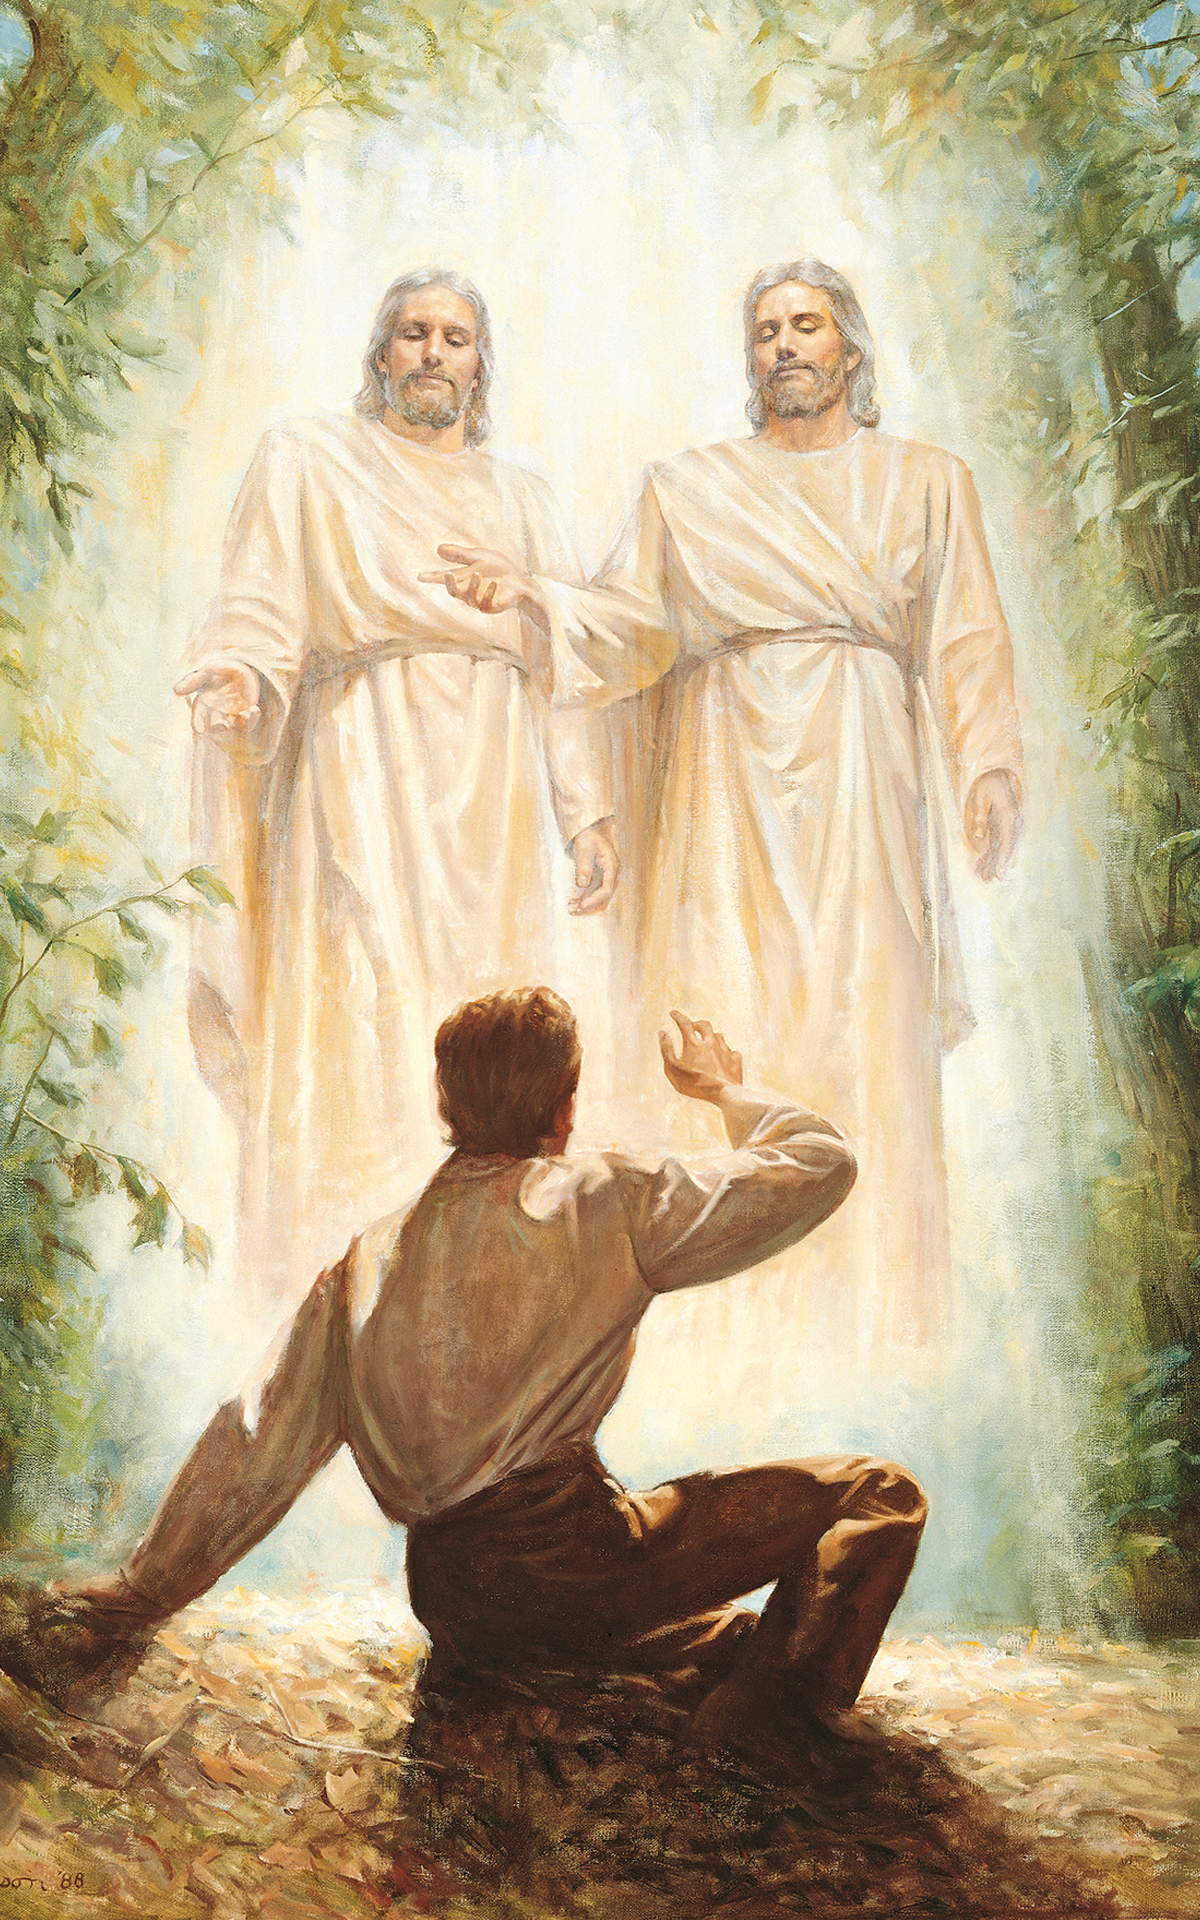 God and Jesus Christ appear to Joseph Smith, known as the First Vision.